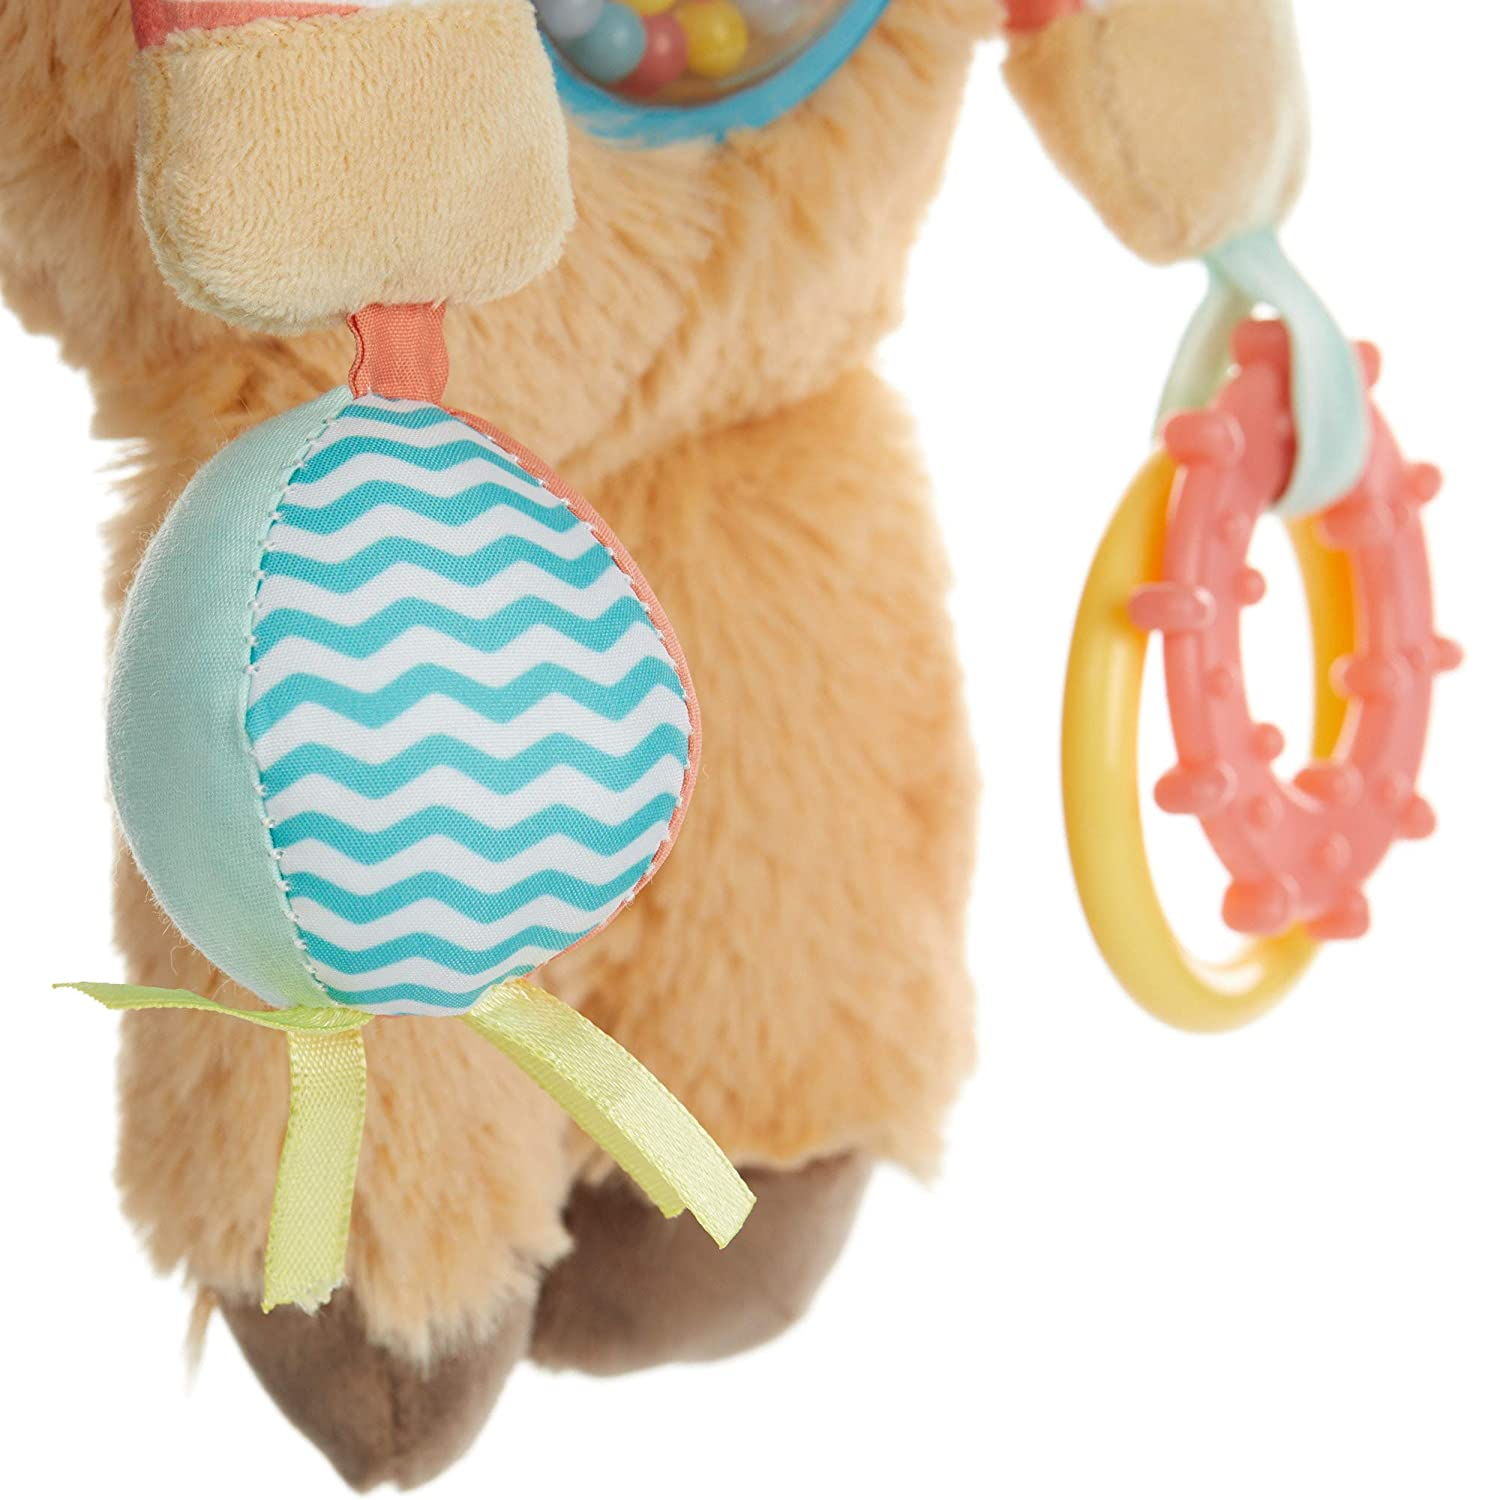 Carters Sloth Activity Toy 9.5 inches